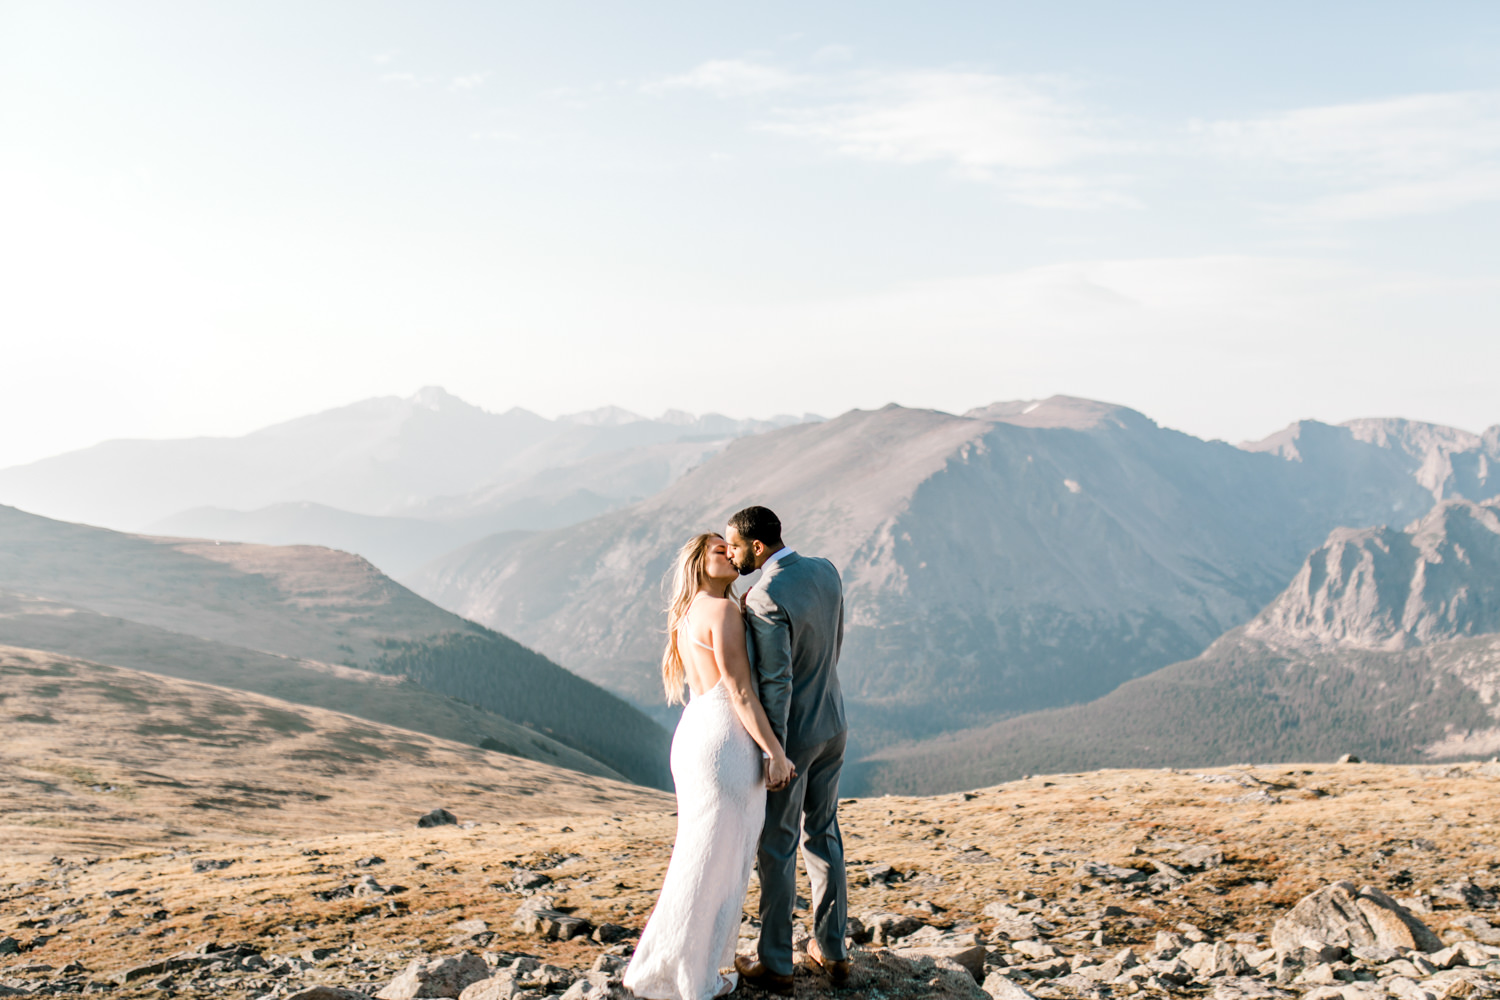 Felicia and Rob - RMNP Colorado Wedding Pictures 8.16.18 - Sam Areman Photo 252125